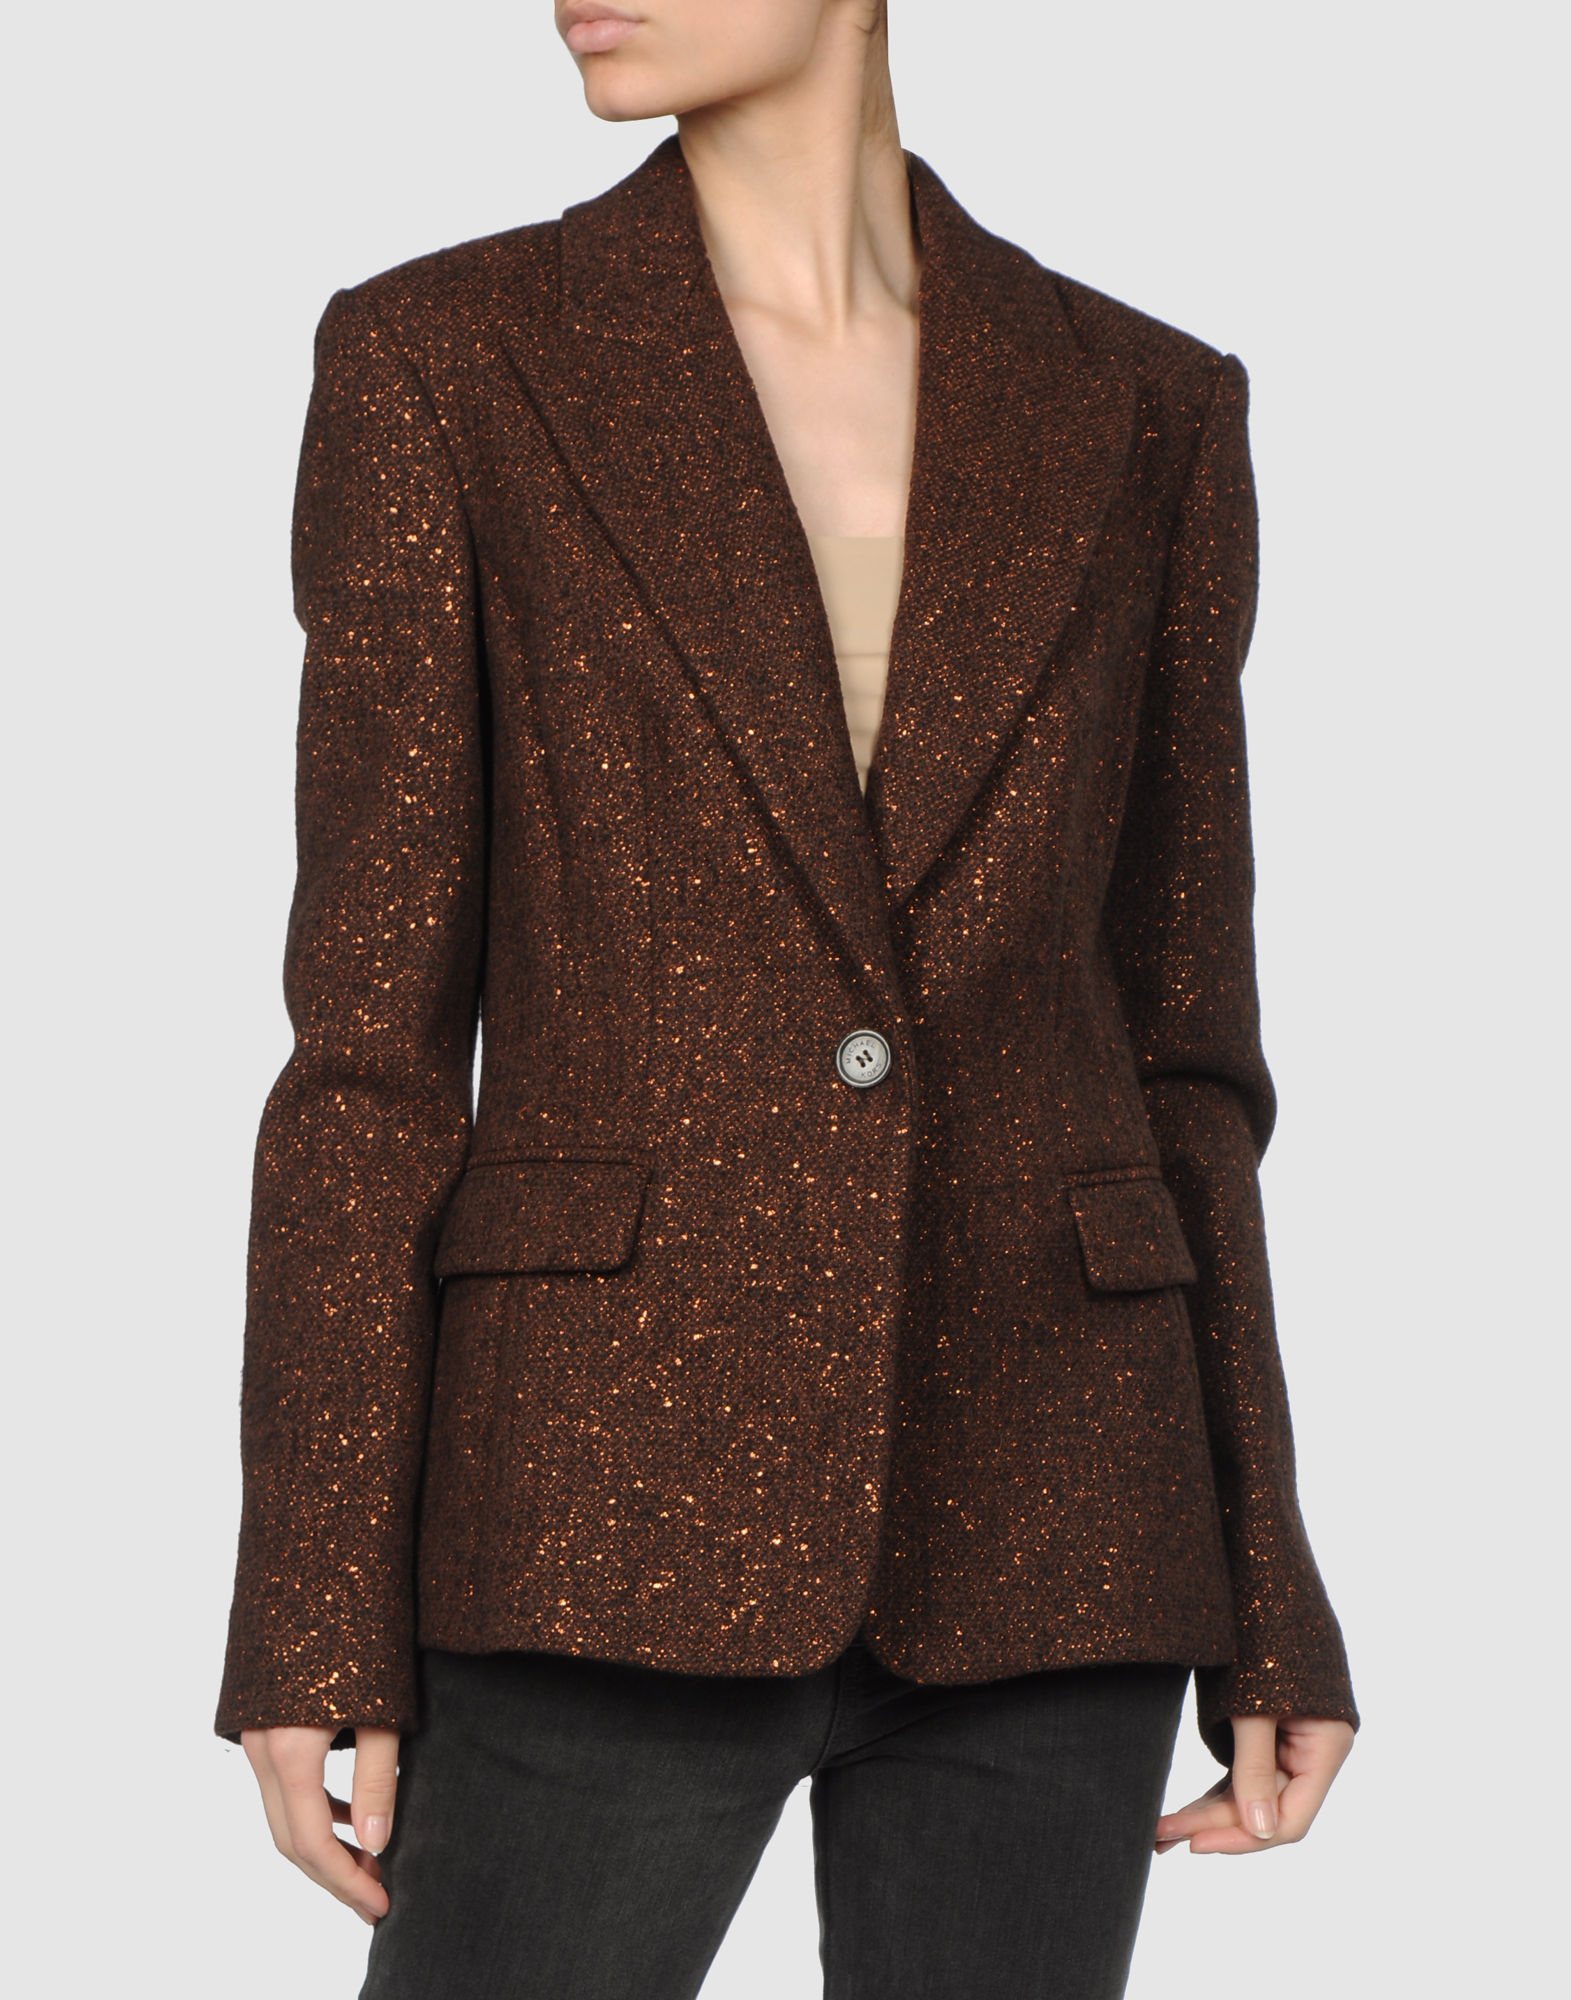 michael kors blazer in gold copper lyst. Black Bedroom Furniture Sets. Home Design Ideas